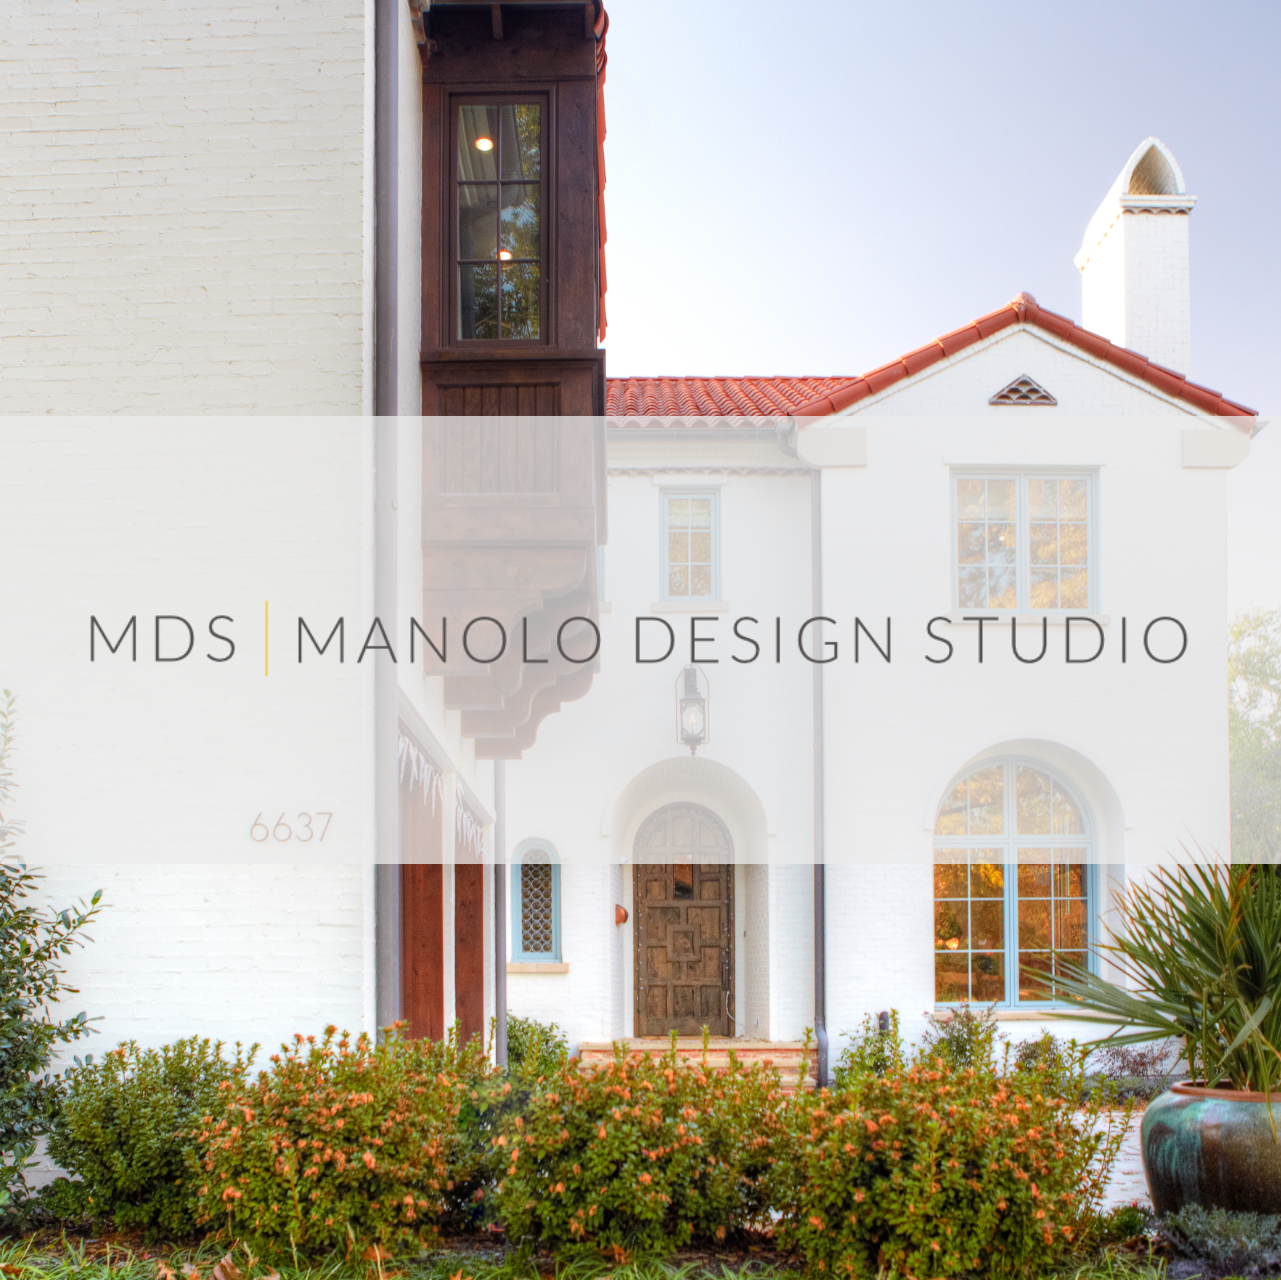 Manolo Design Studio. Dallas Design firm. Branding + Website + Print Marketing